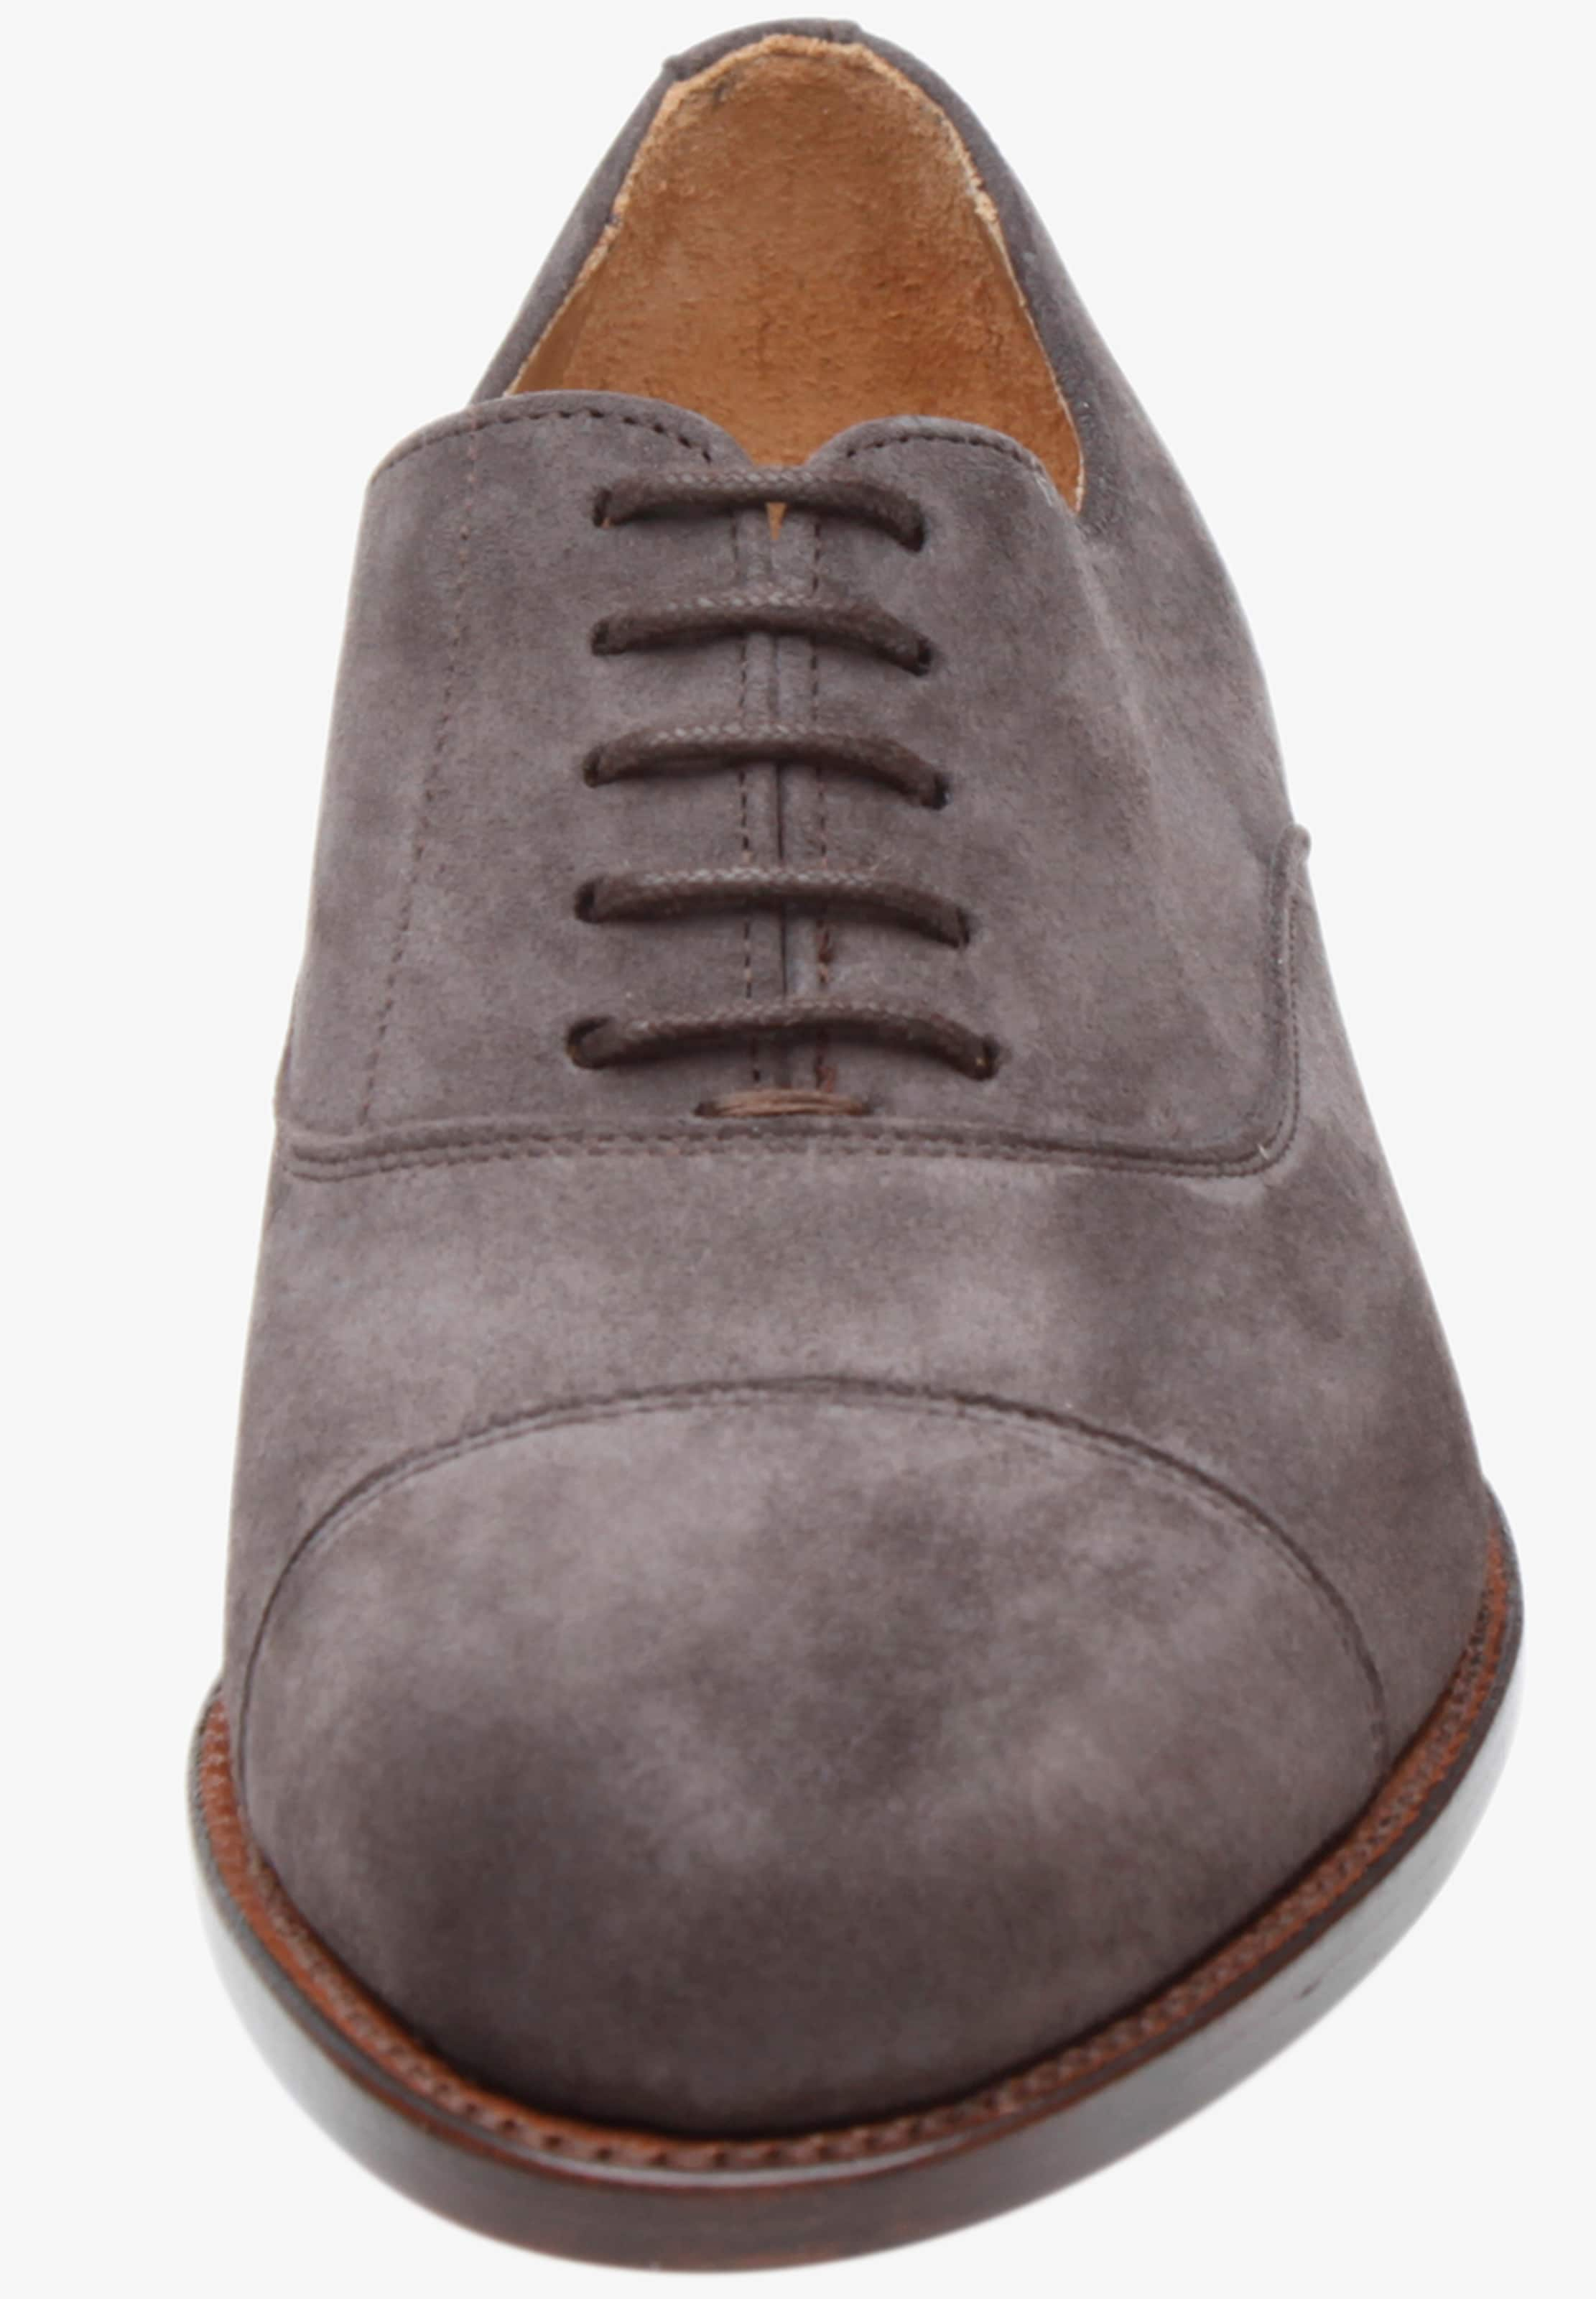 Shoepassion 'no1107' Shoepassion In Schnürschuhe Shoepassion Schnürschuhe Grau 'no1107' Grau In LARc4q53j